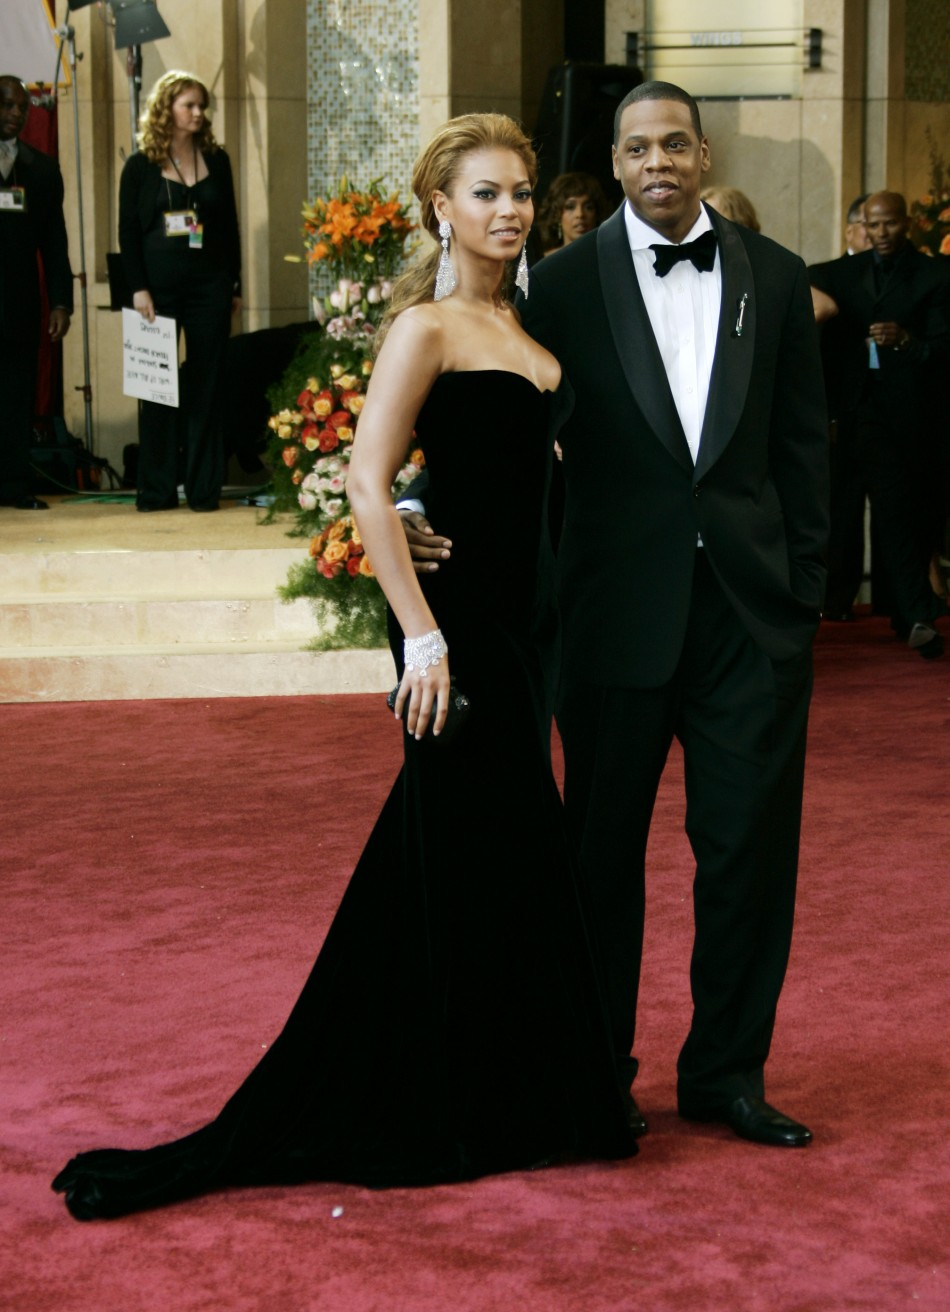 Beyonce and Jay-Zs daughter Blue Ivy Carter is on second spot